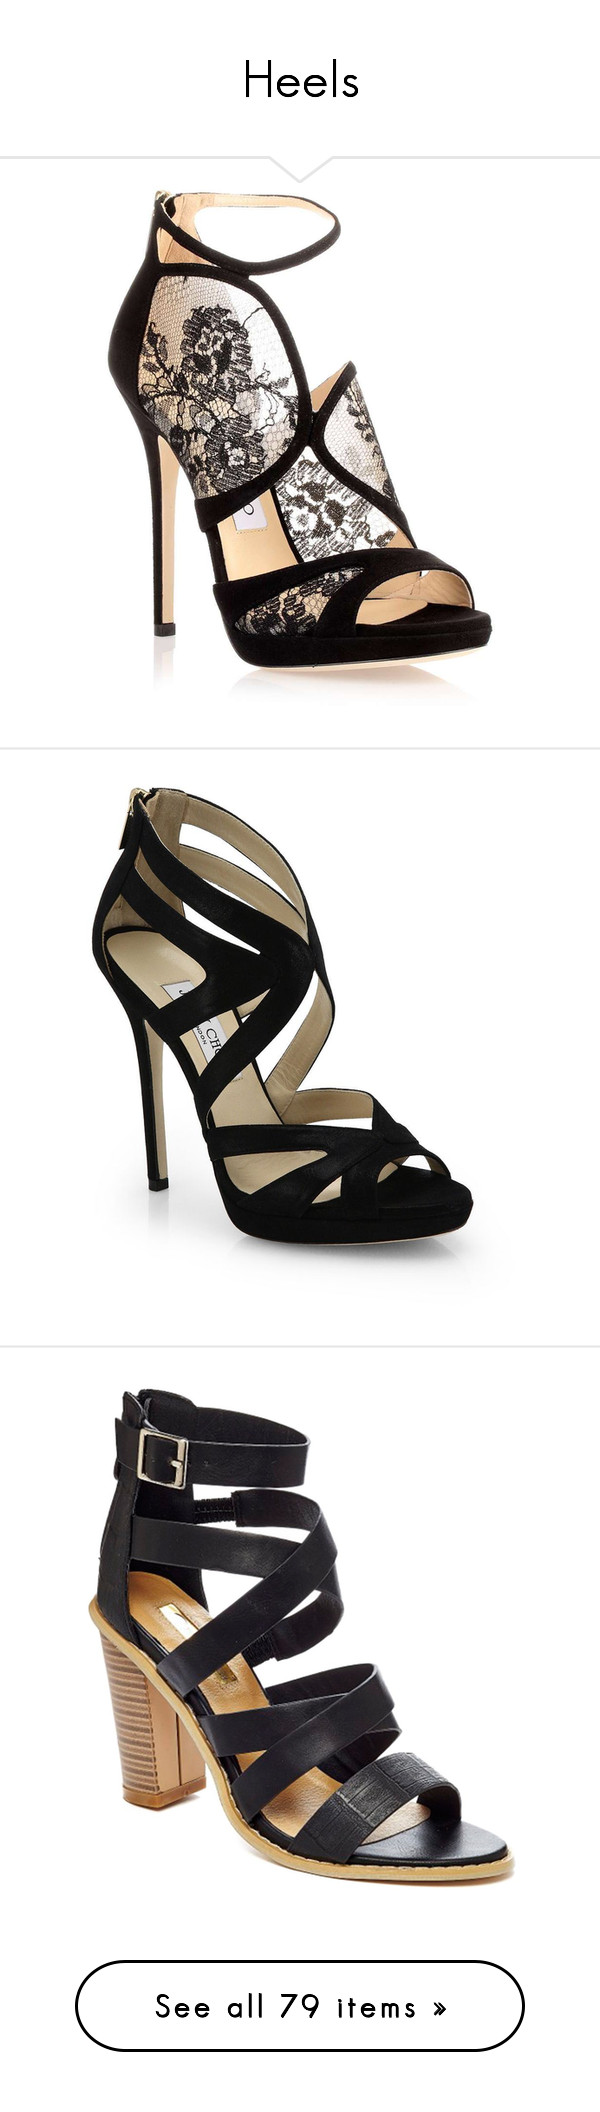 """""""Heels"""" by welcometoweirdschool on Polyvore featuring shoes, sandals, heels, high heels, sapatos, black shoes, black platform shoes, heeled sandals, high heel sandals and platform heel sandals"""